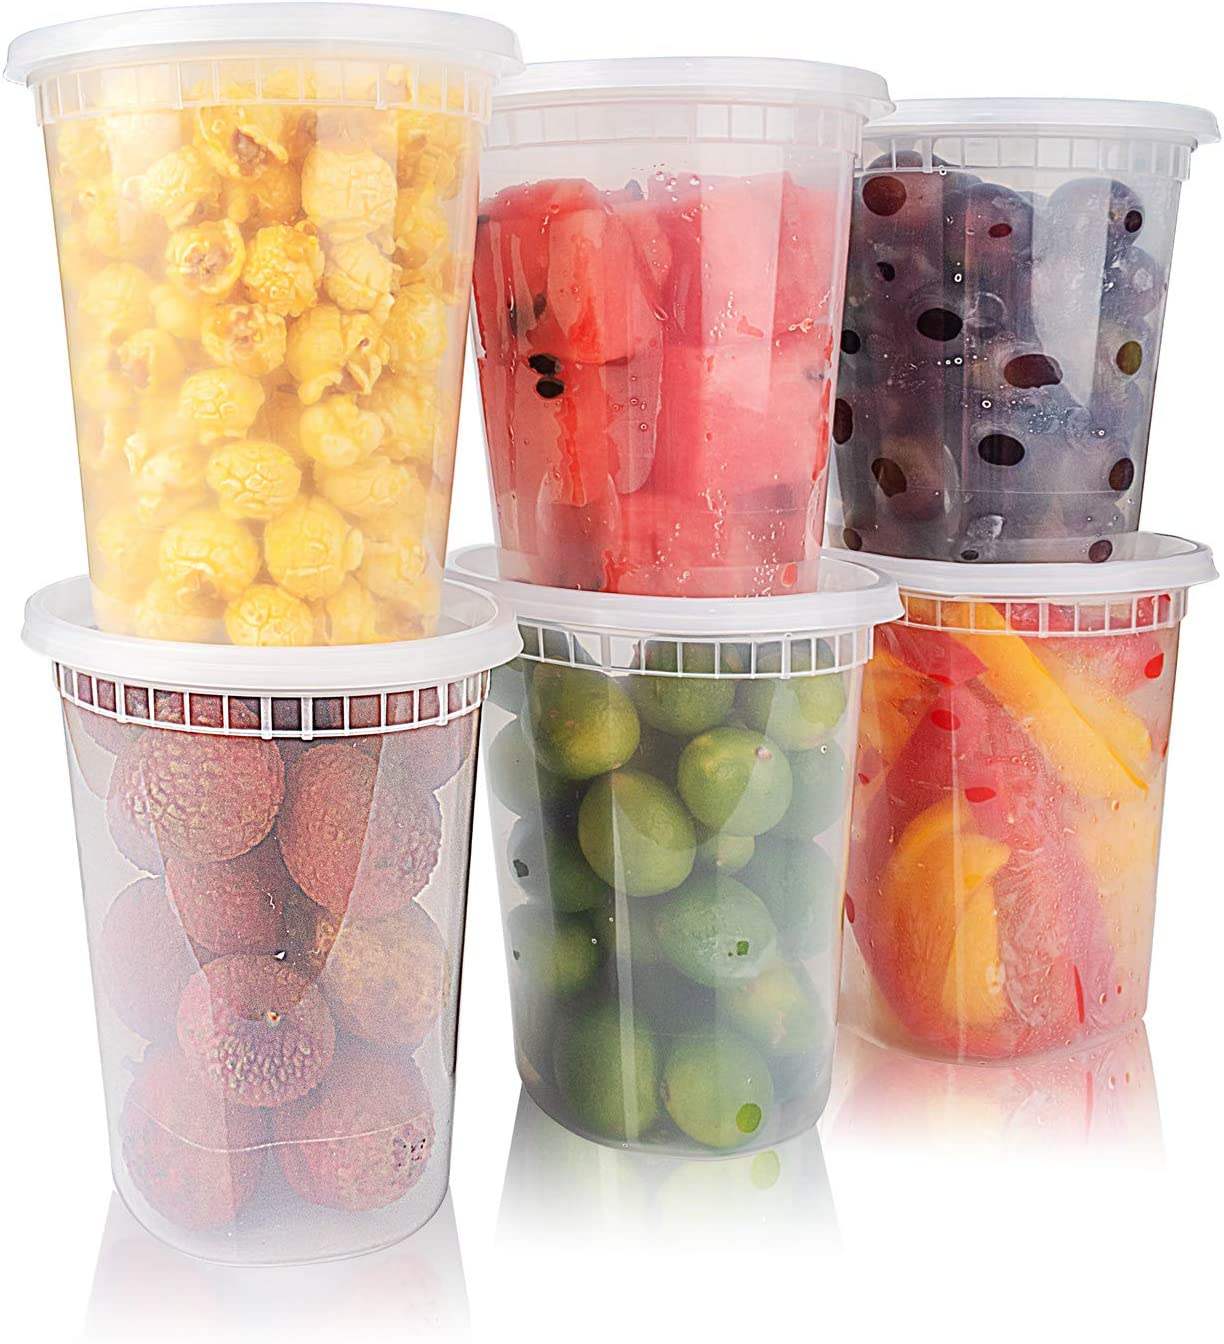 Fansyer 32 oz 60 Set Plastic Deli Food Storage Containers with Airtight Lids| Resuable, Microwaveable, Dishwasher, Freezer Safe